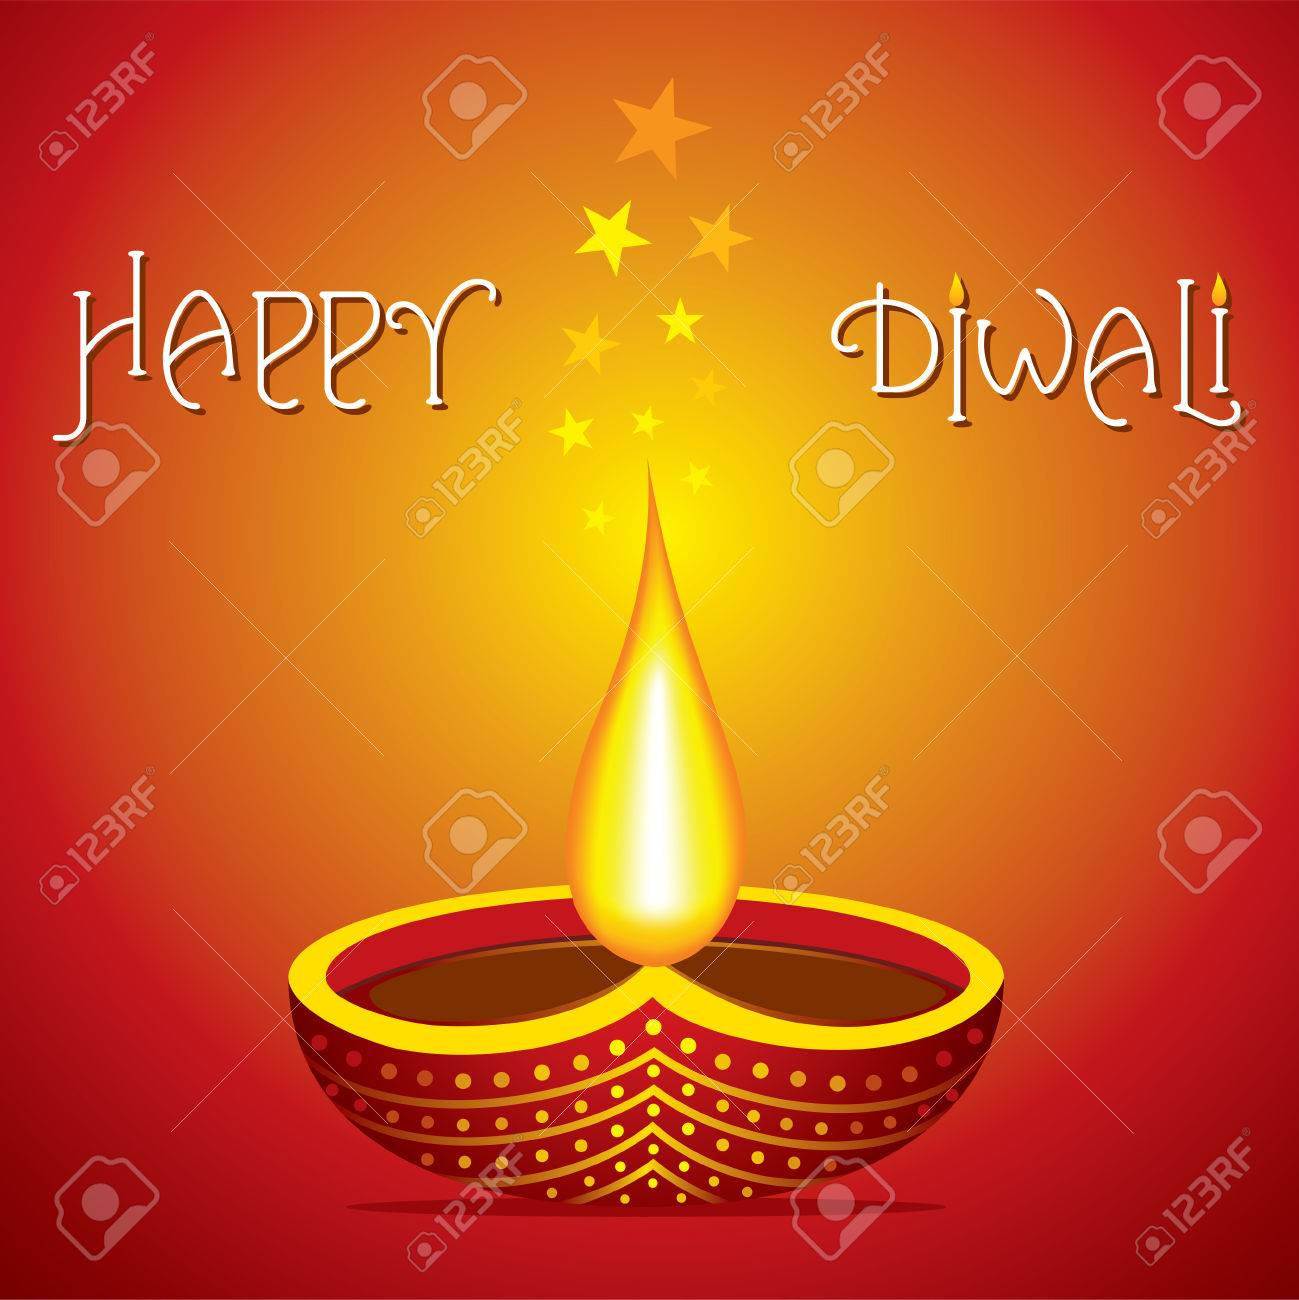 Happy Diwali Poster Or Greeting Design Vector Royalty Free Cliparts